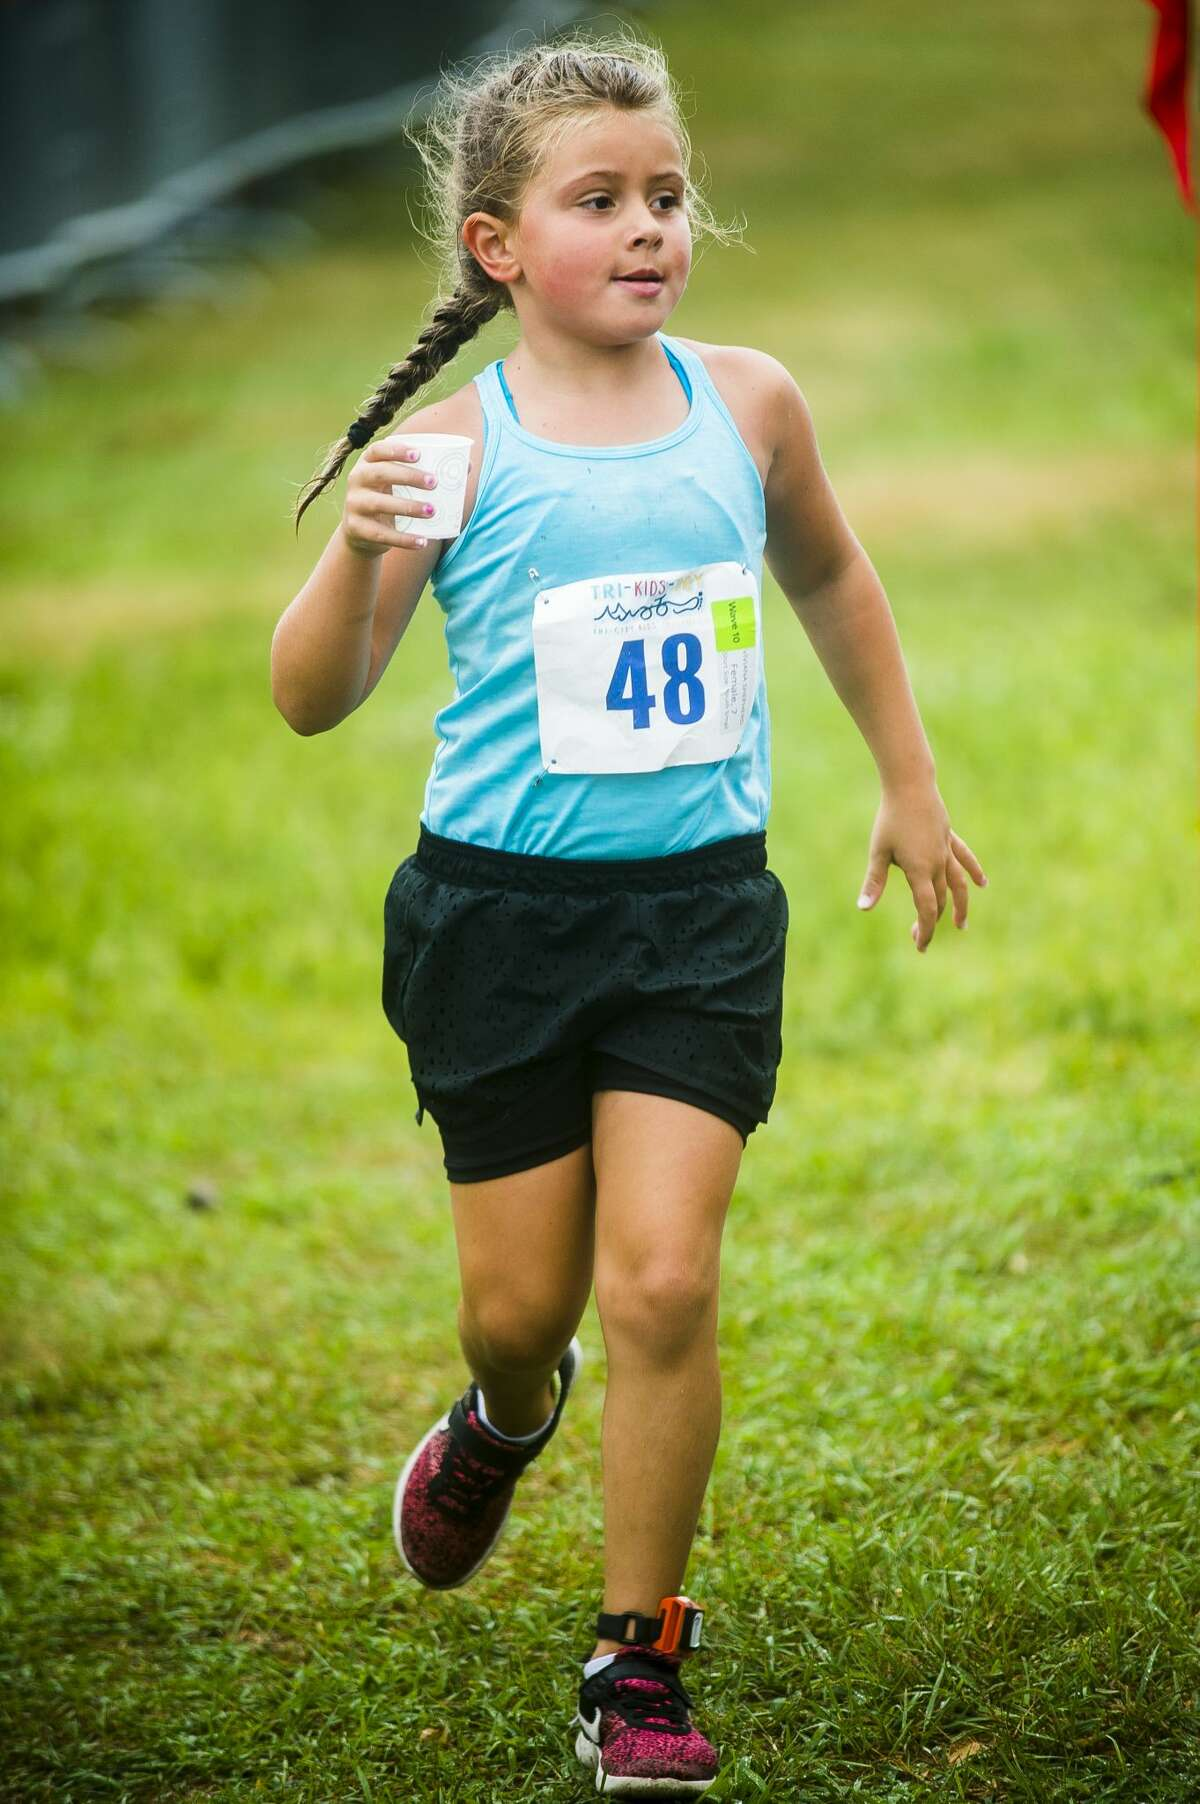 Viviana Shepherd competes in the July 21, 2018 Tri-Kids-Try triathlon at Plymouth Park.